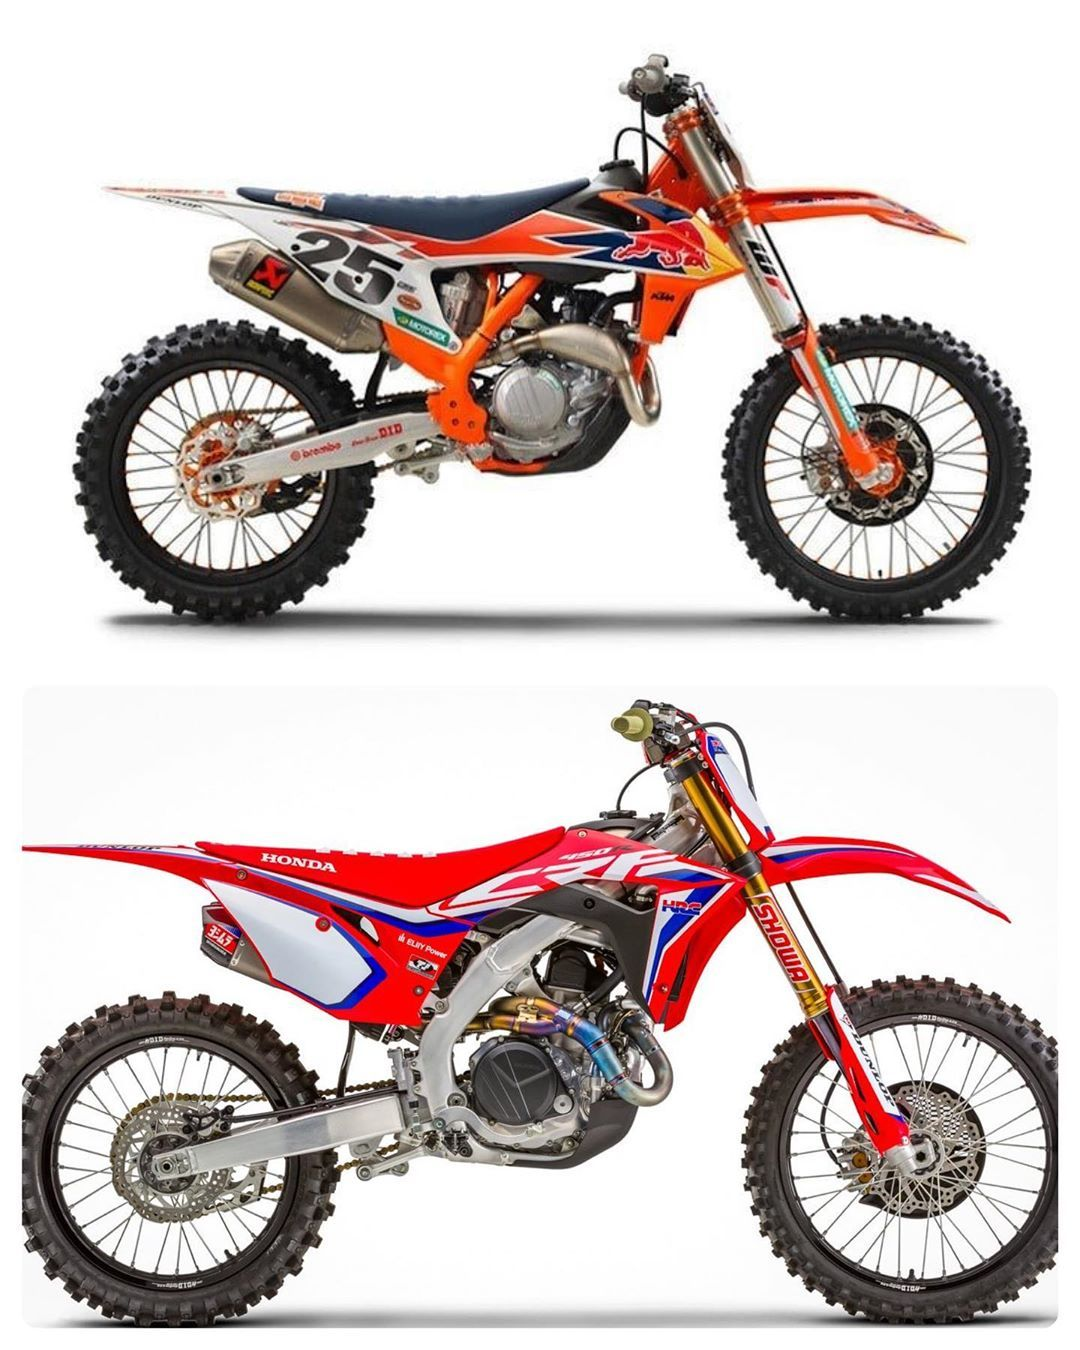 2019 5 Factory Edition Ktmusa Or 2020 Works Edition